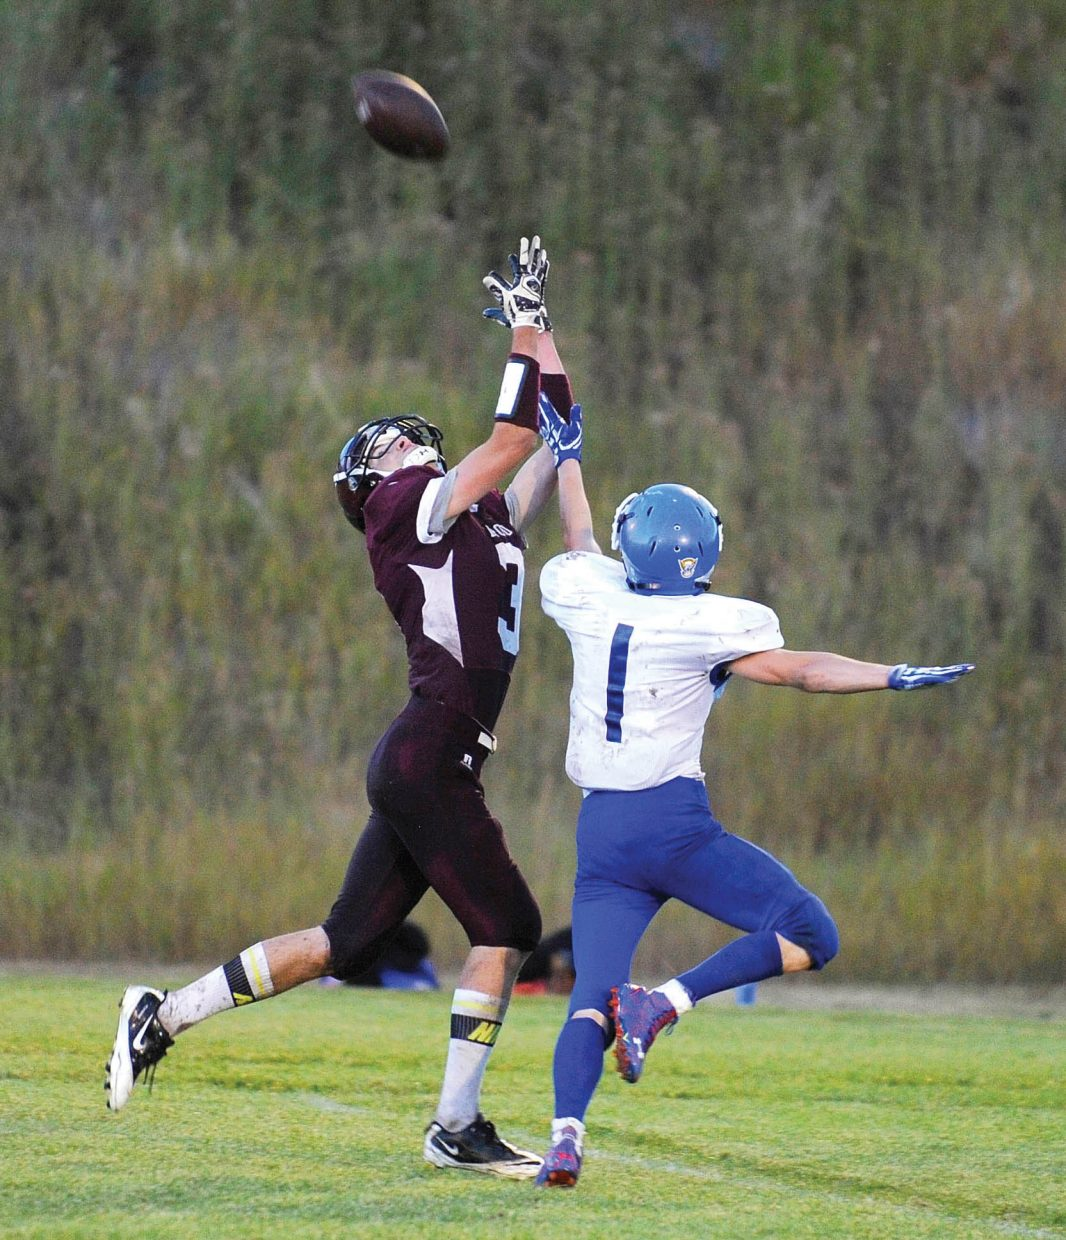 Soroco's Brendon Veilleux pulls in a pass during the Soroco Rams loss to Norwood earlier this season. The Rams have won the two games since the loss, and will be looking to improve the team's record again Friday when the squad faces Rangely in the school's homecoming game.